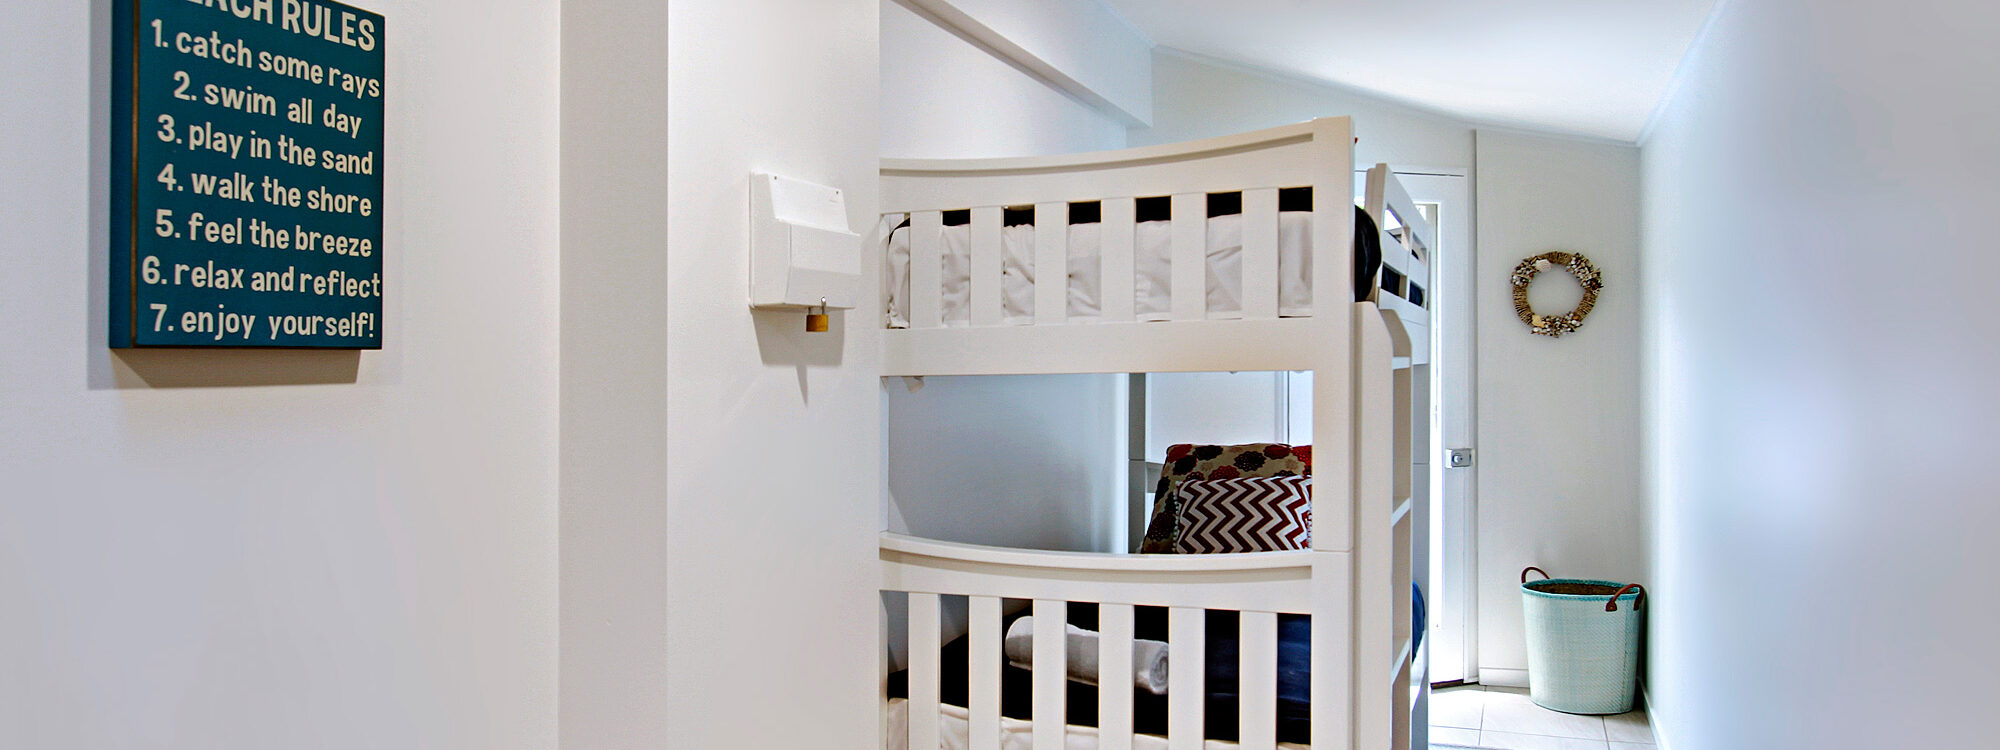 Jimmy's Beach House - Bunk Beds